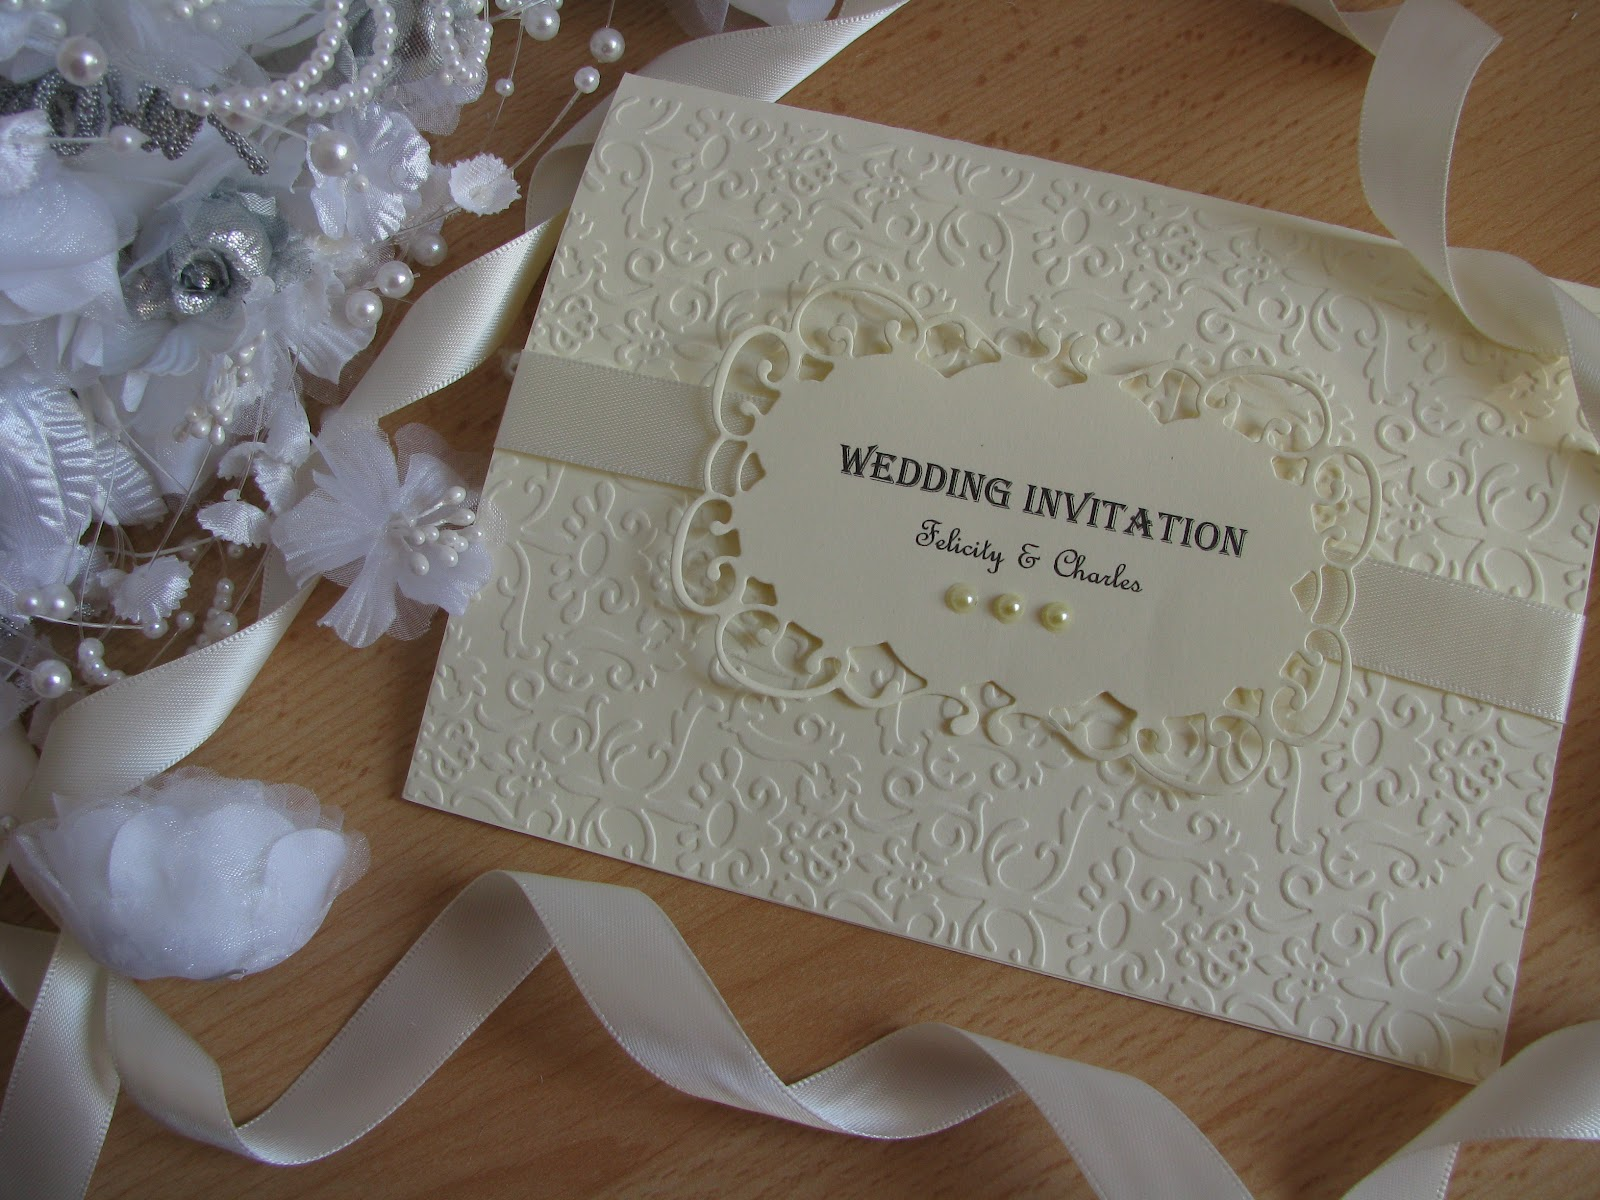 Wedding Invitation Card Handmade: Personalised Vintage Wedding Invitation / Stationery Set